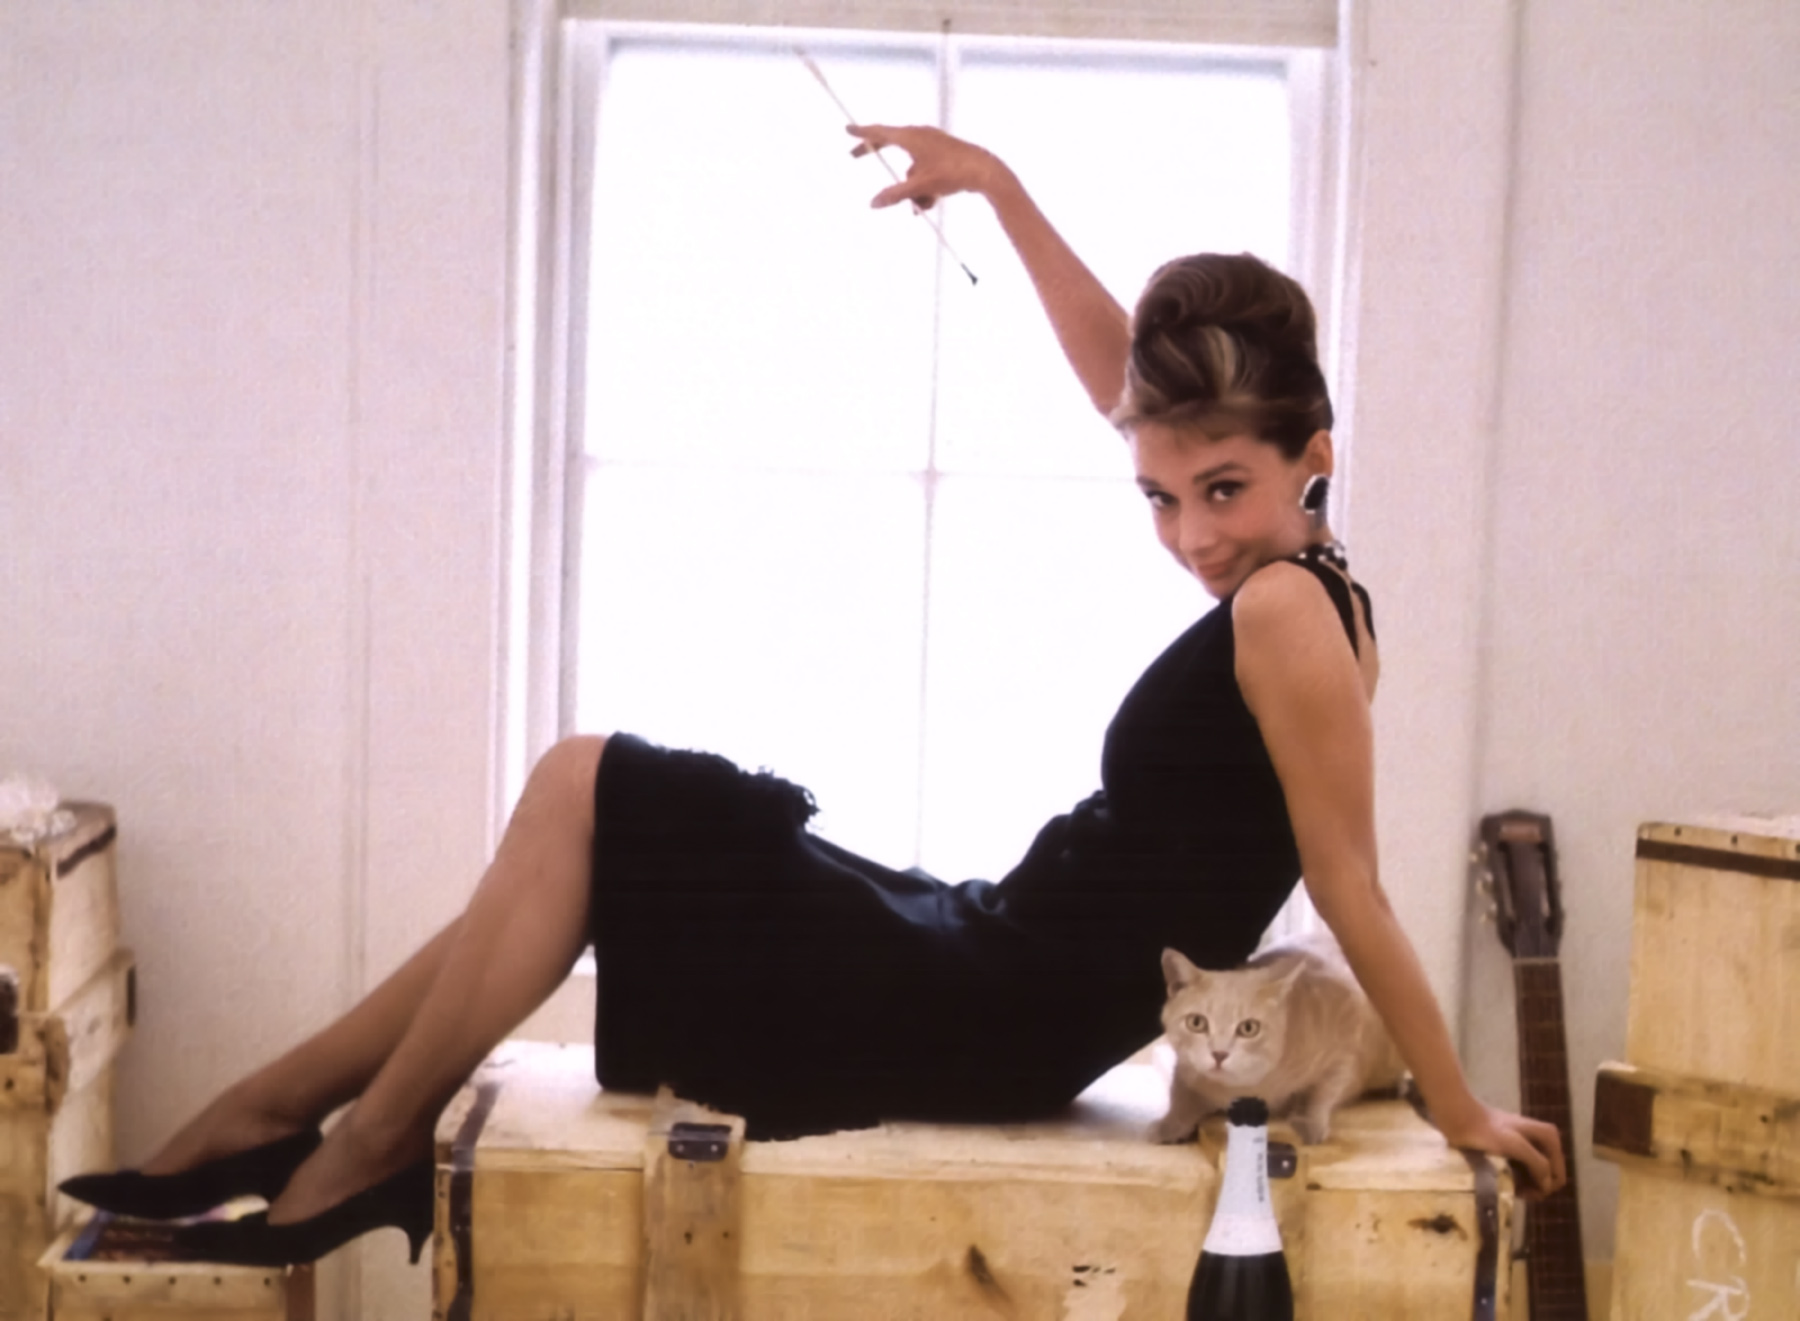 Annex%20 %20Hepburn,%20Audrey%20(Breakfast%20at%20Tiffanys) 02 Holly Golightly and Cat